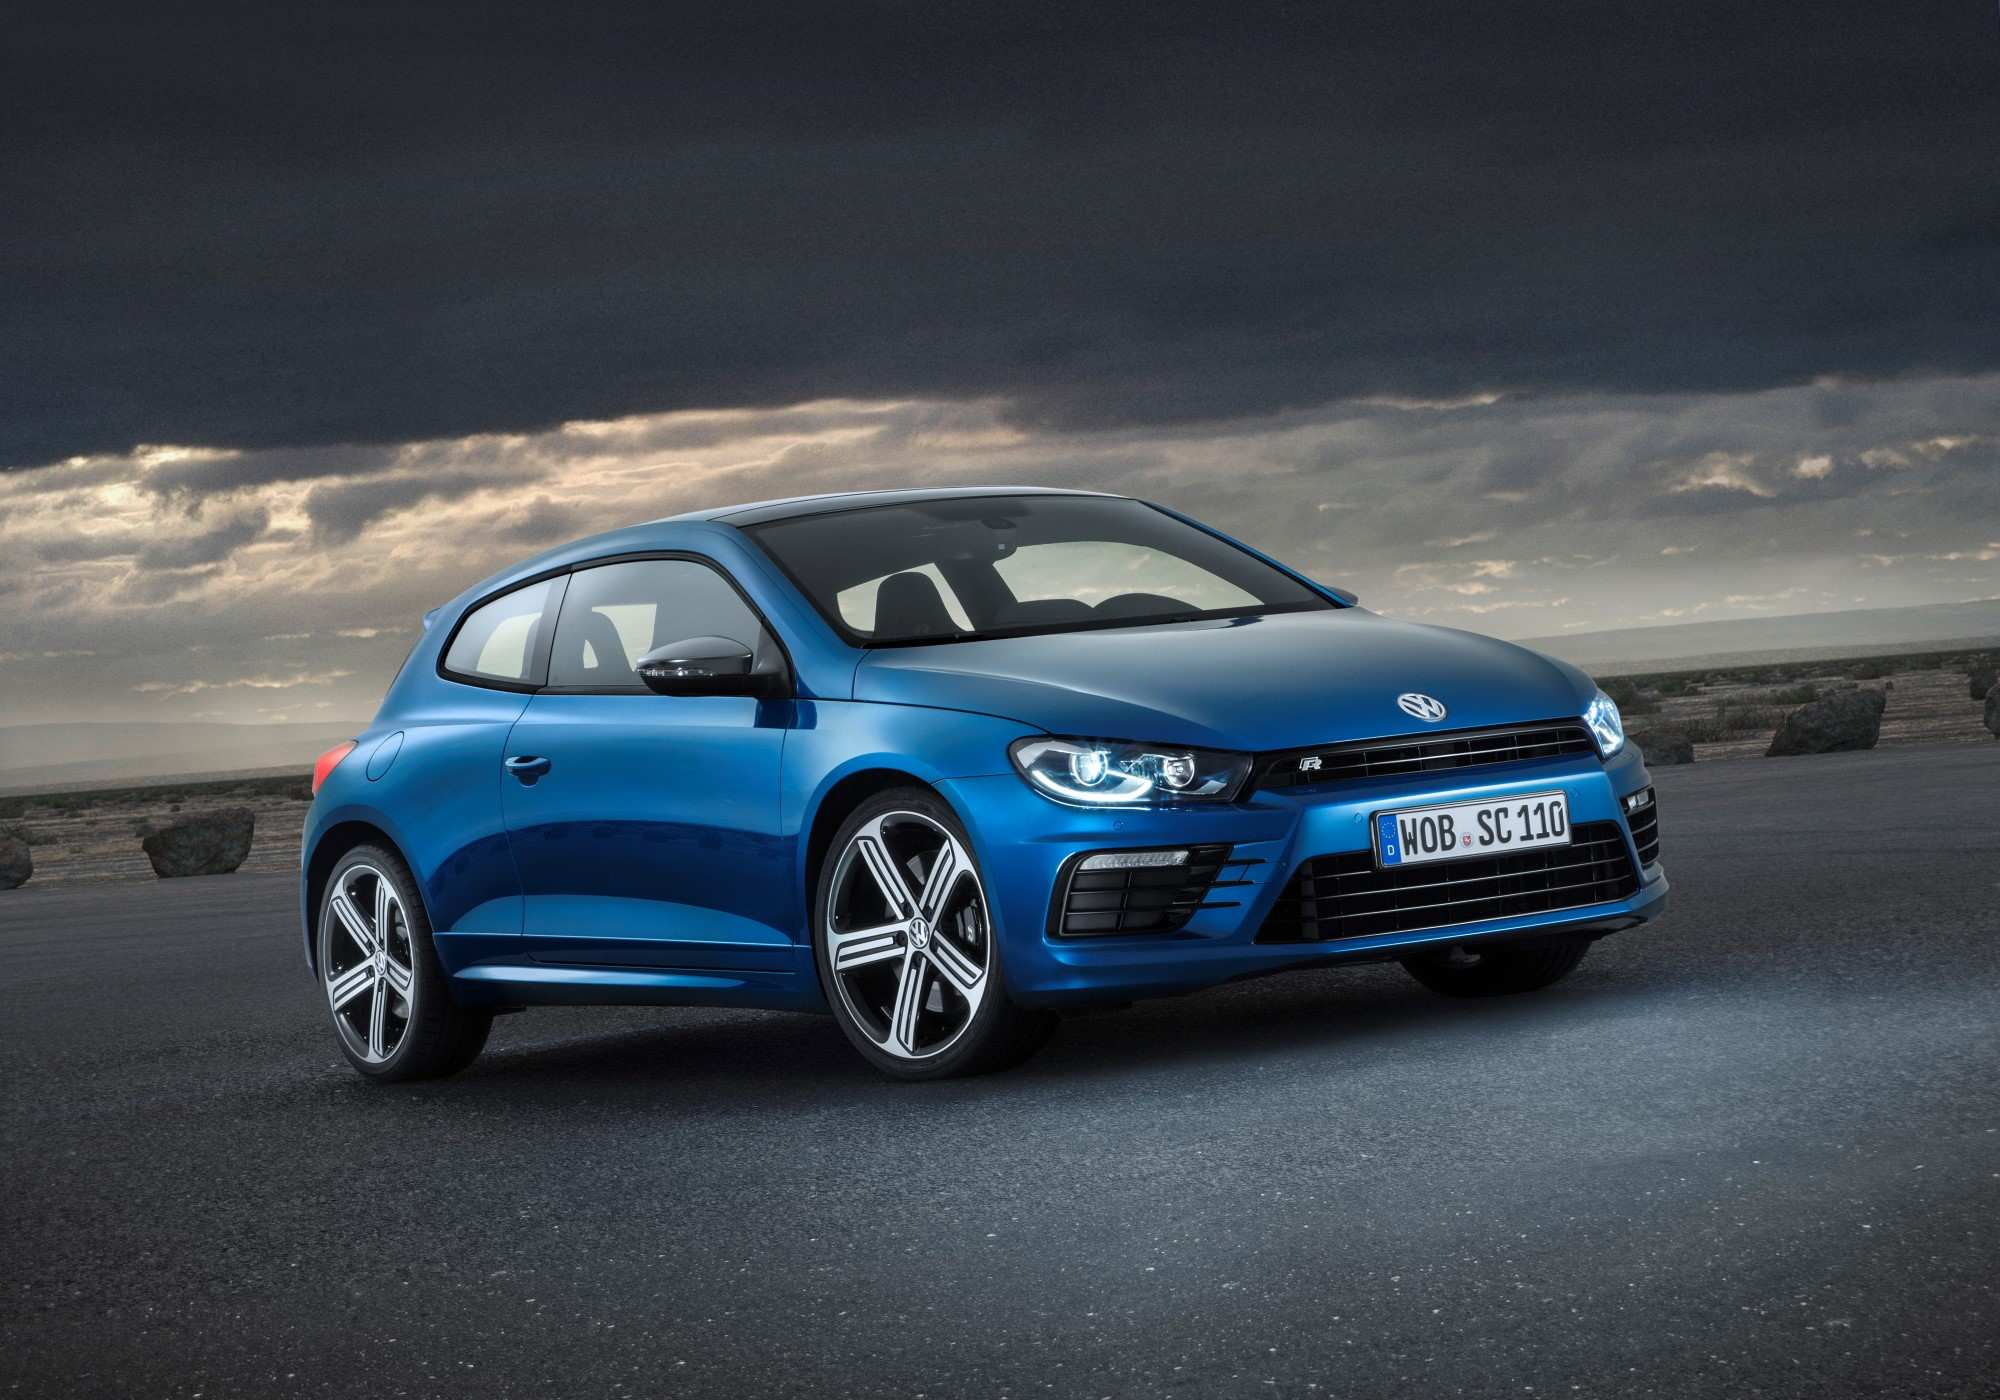 71 All New Volkswagen Scirocco 2020 Research New with Volkswagen Scirocco 2020